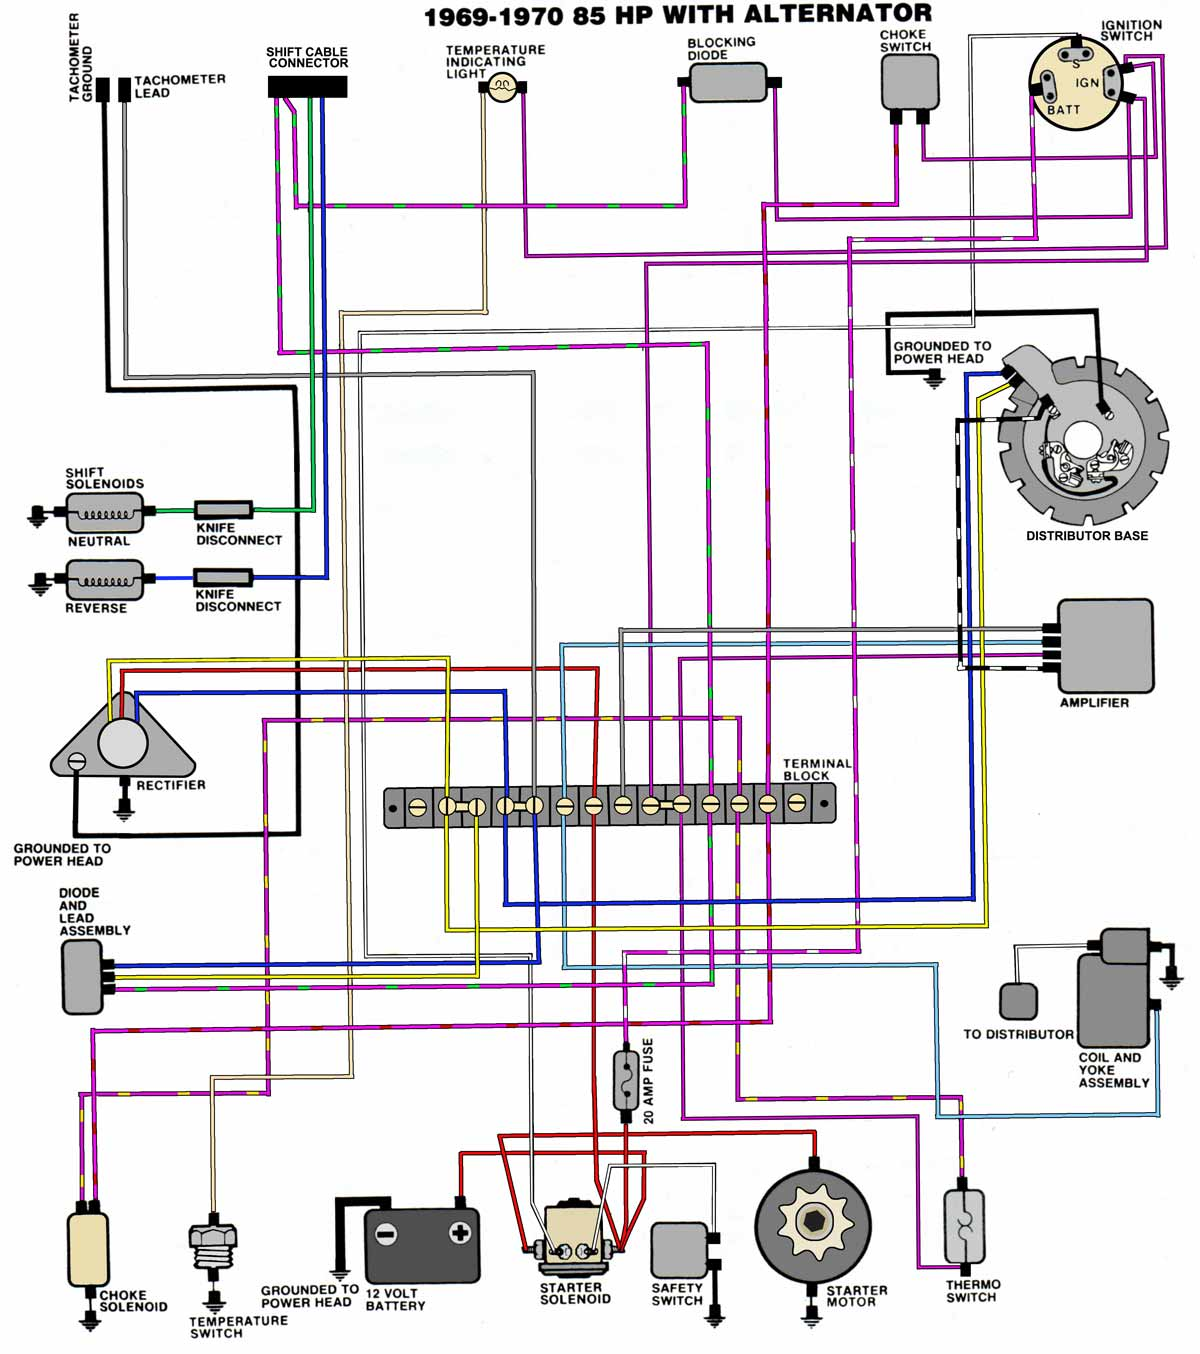 evinrude engine diagram color engine mechanical components 48 Hp Evinrude Wiring Diagram evinrude engine diagram color engine